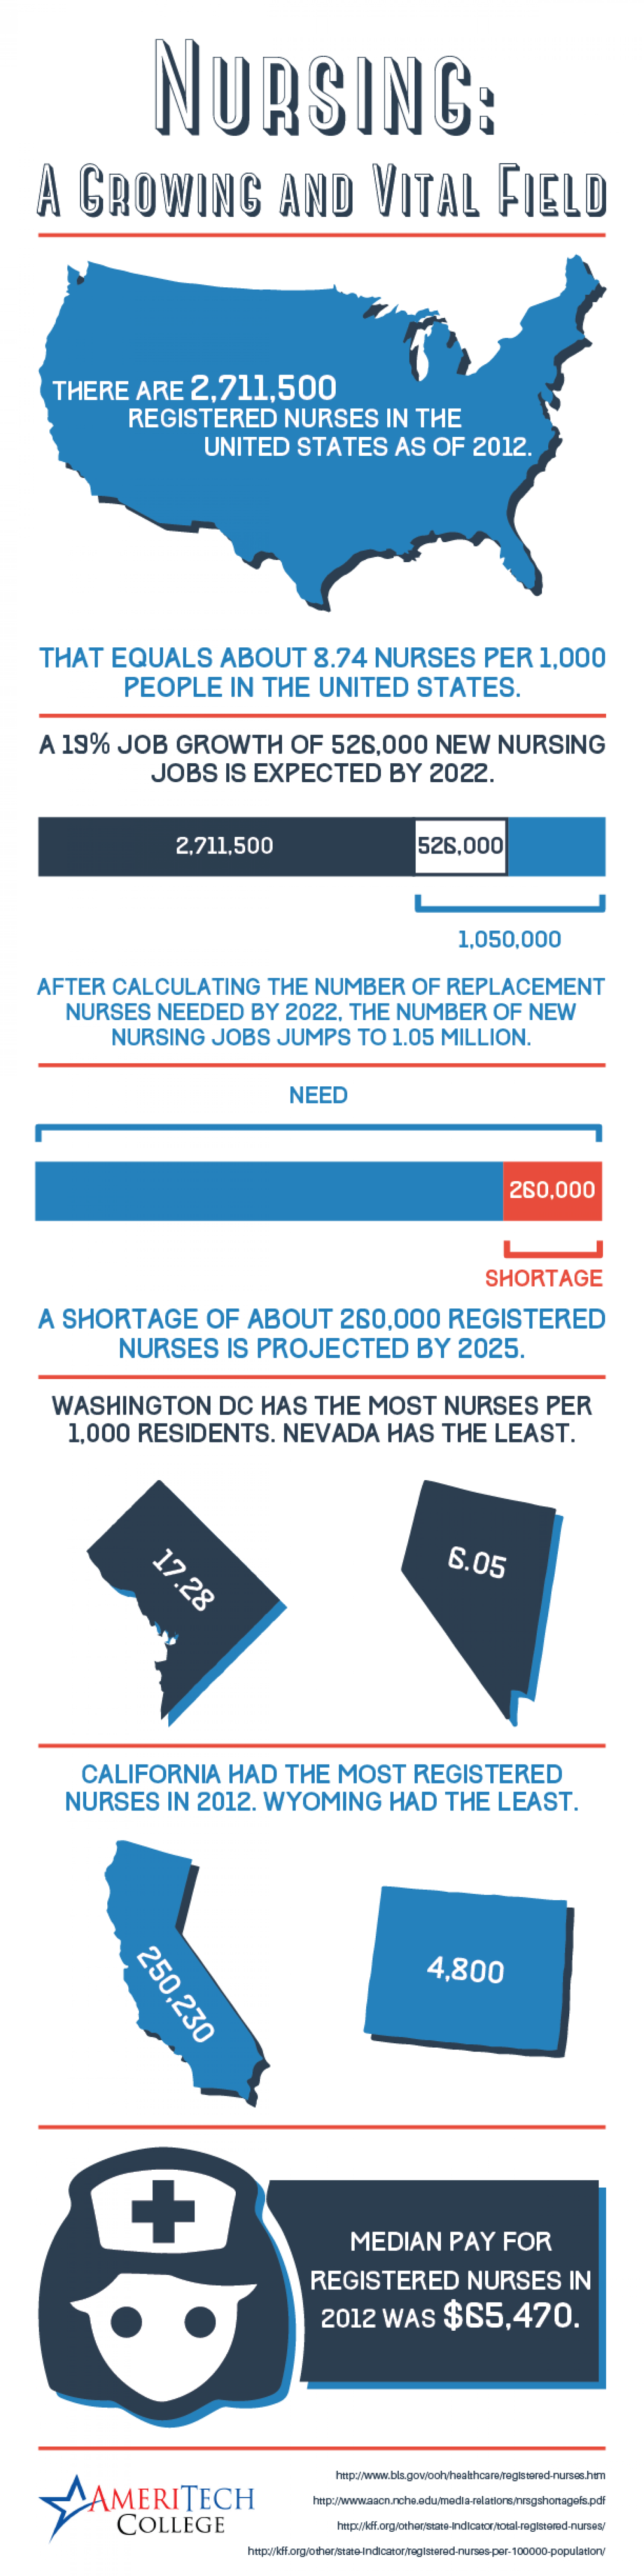 Nursing: A Growing and Vital Field Infographic